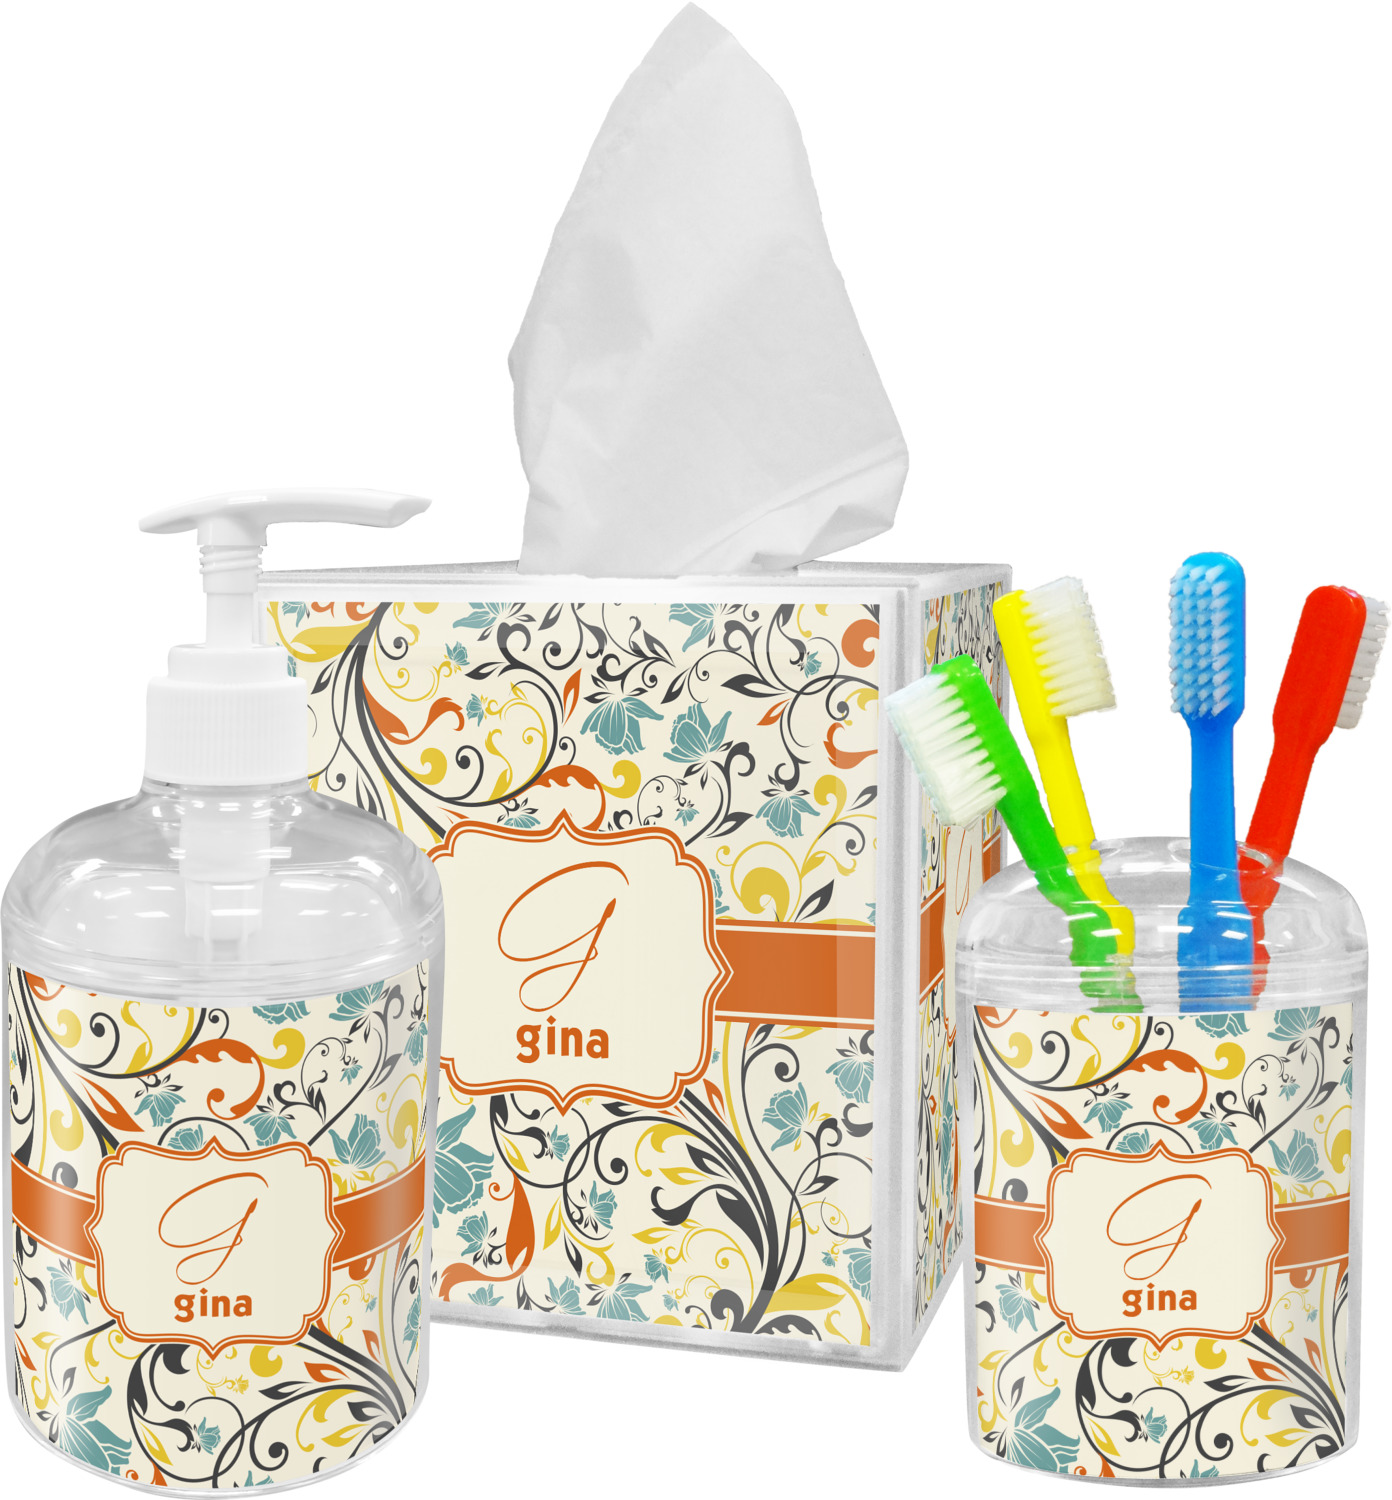 Swirly Floral Tissue Box Cover Personalized You